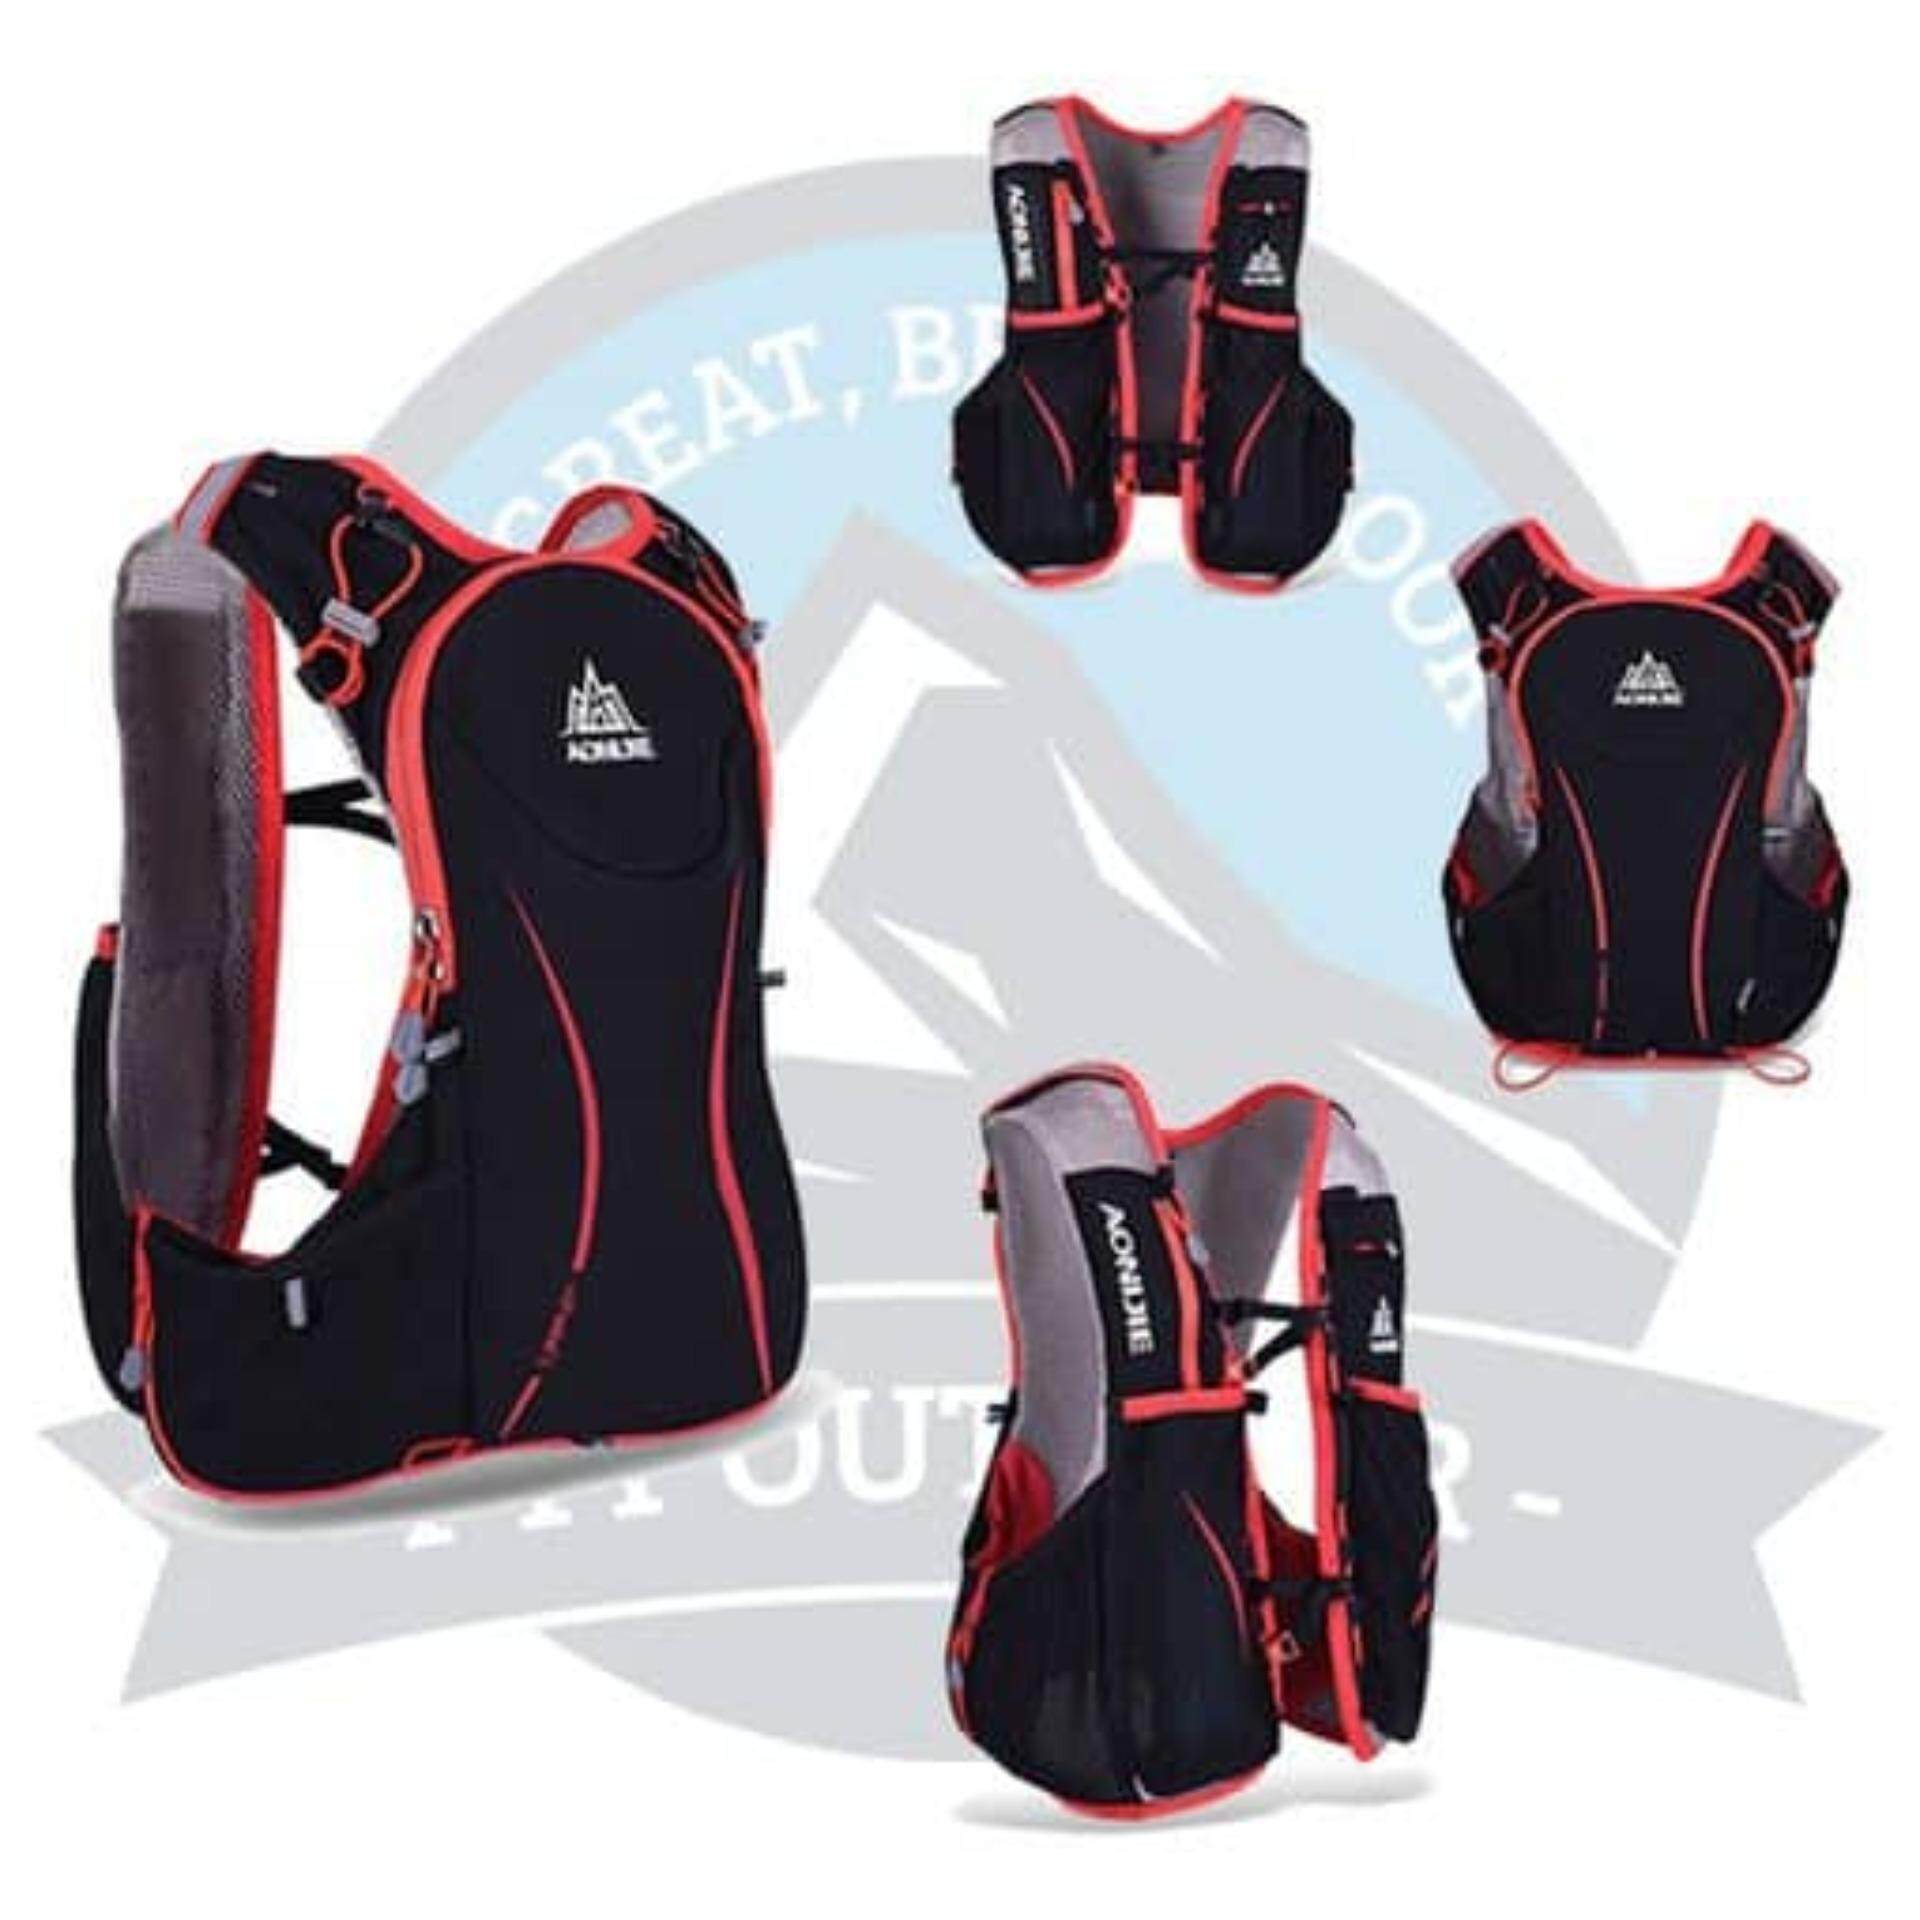 [Ready Stock] AONIJIE 5L Outdoor Sport Running Vest Backpack Women/Men Hydration Vest Pack for 1.5L Water Bag Cycling Hiking Bag - L/XL - Black